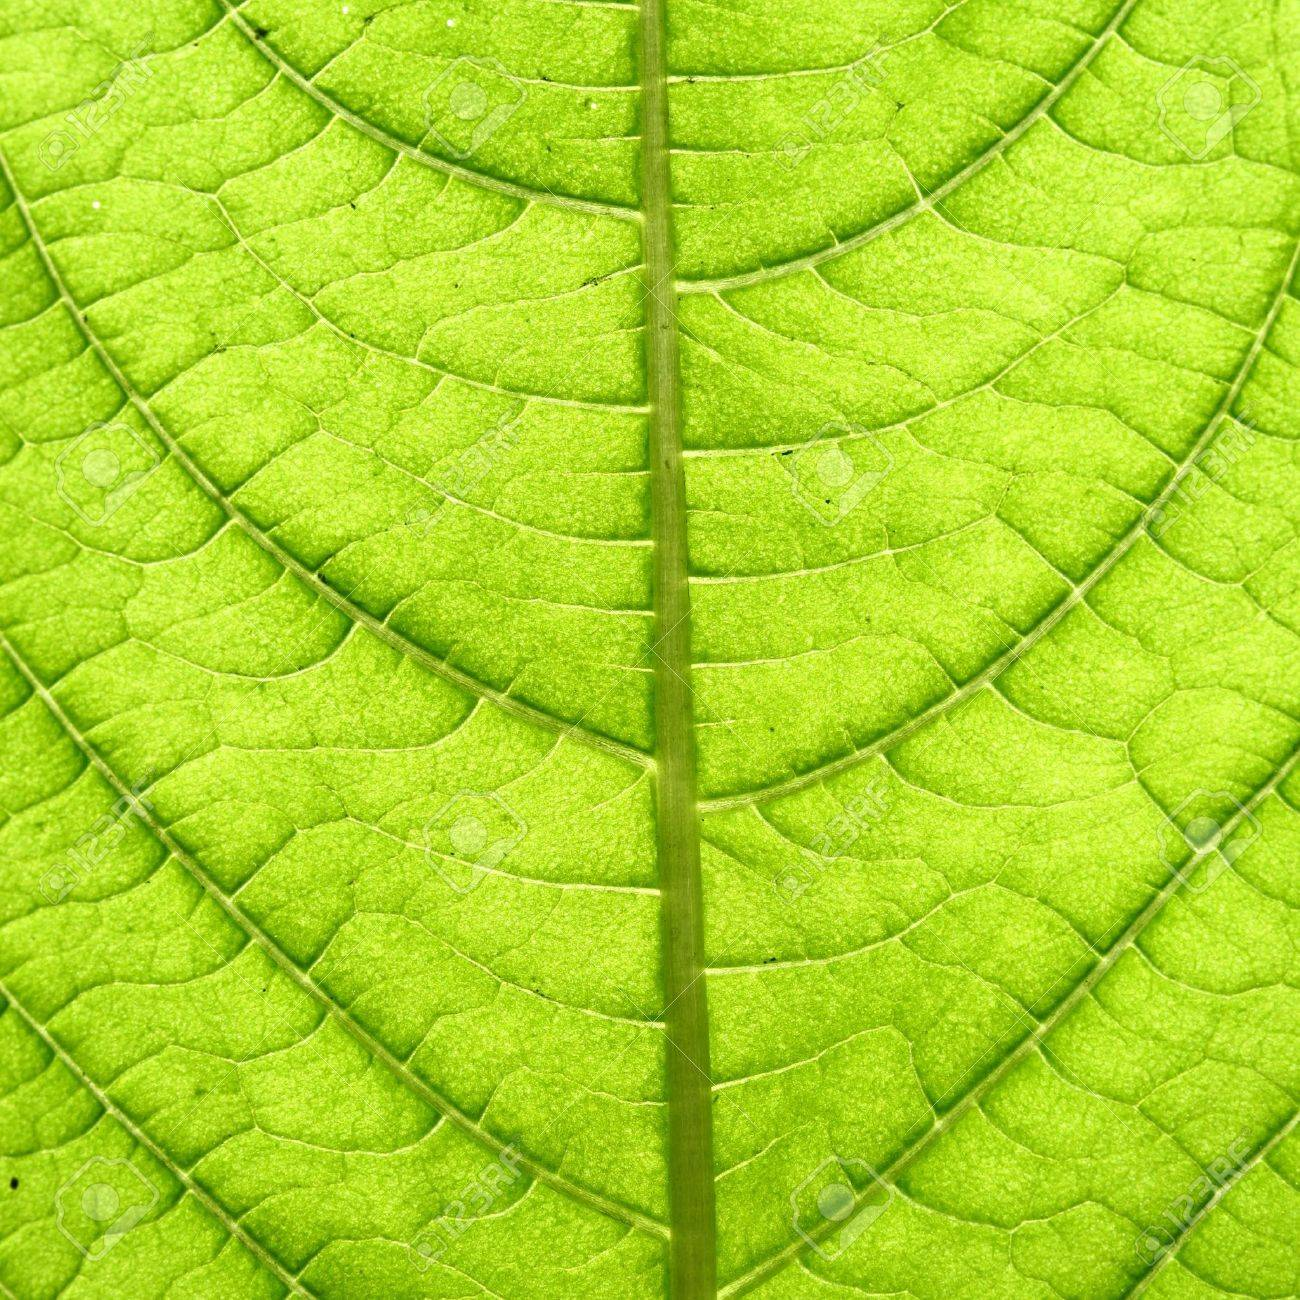 green leaf vein macro close up Stock Photo - 10534889